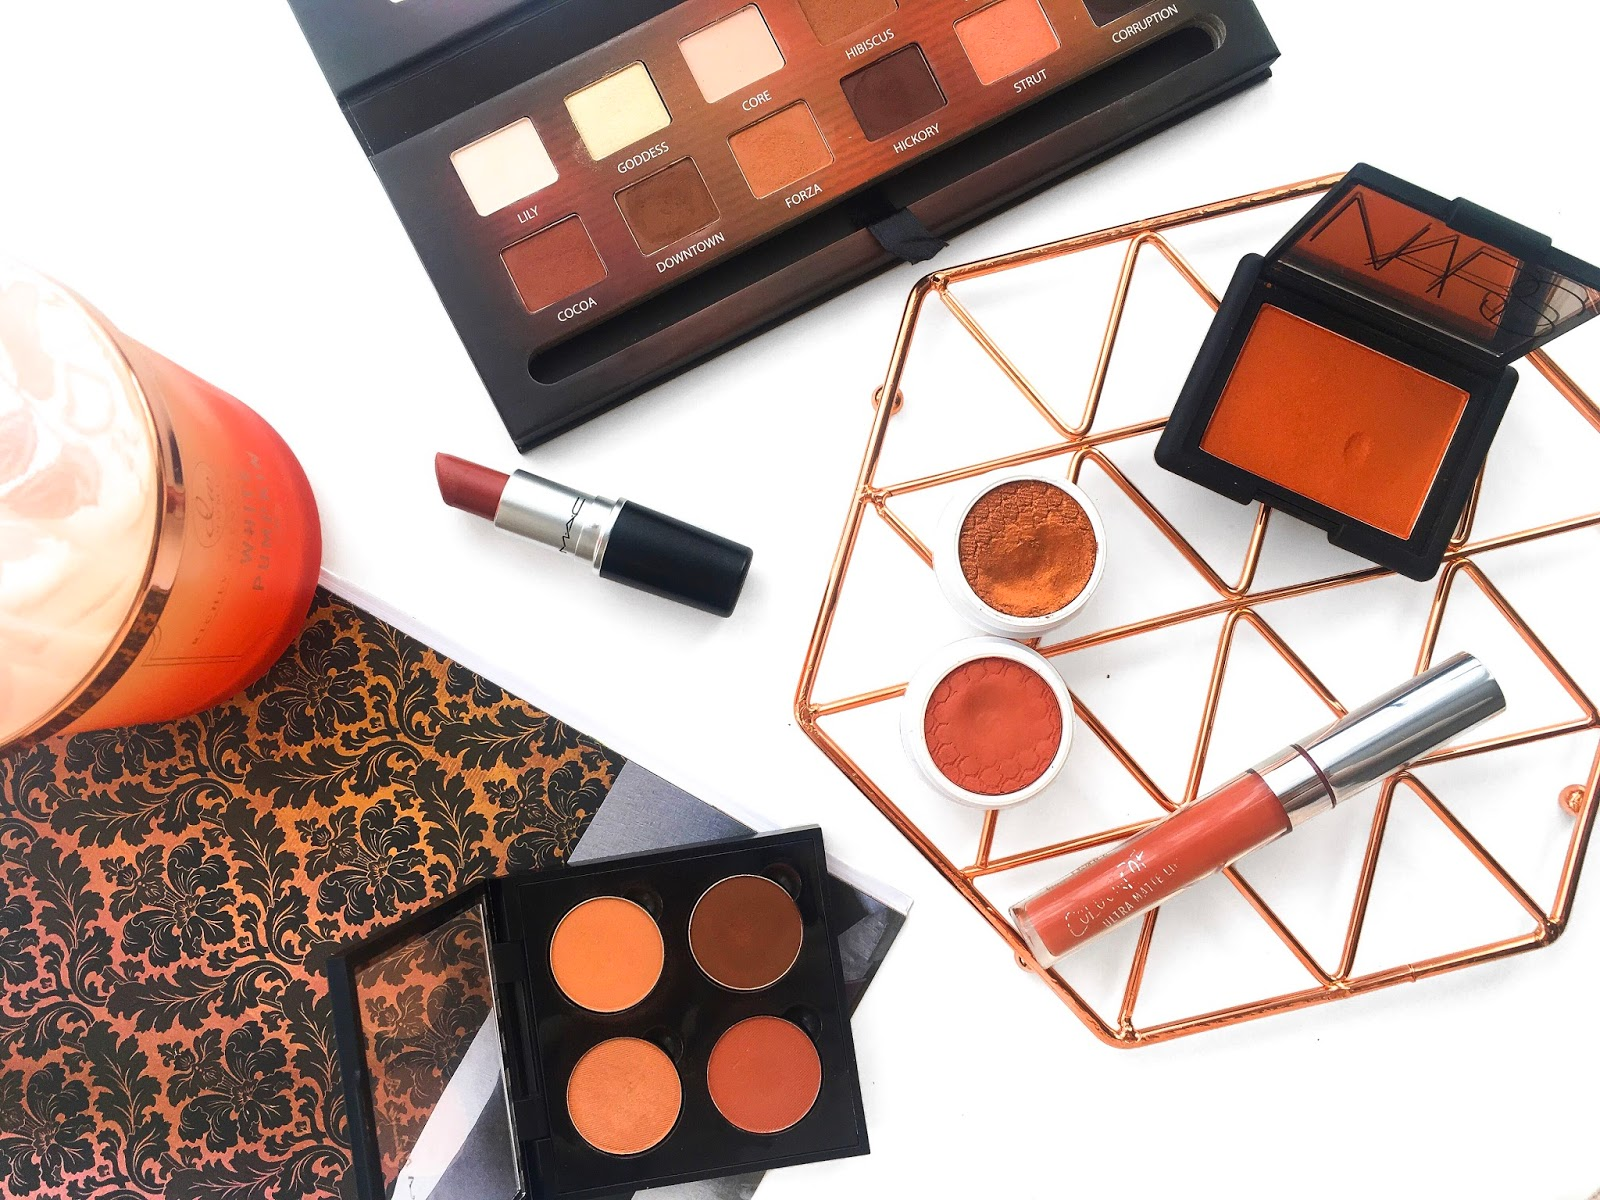 best products for burnt orange makeup looks, burnt orange makeup products, best burnt orange makeup, fall autumn makeup looks, makeup menu, makeup flatlay